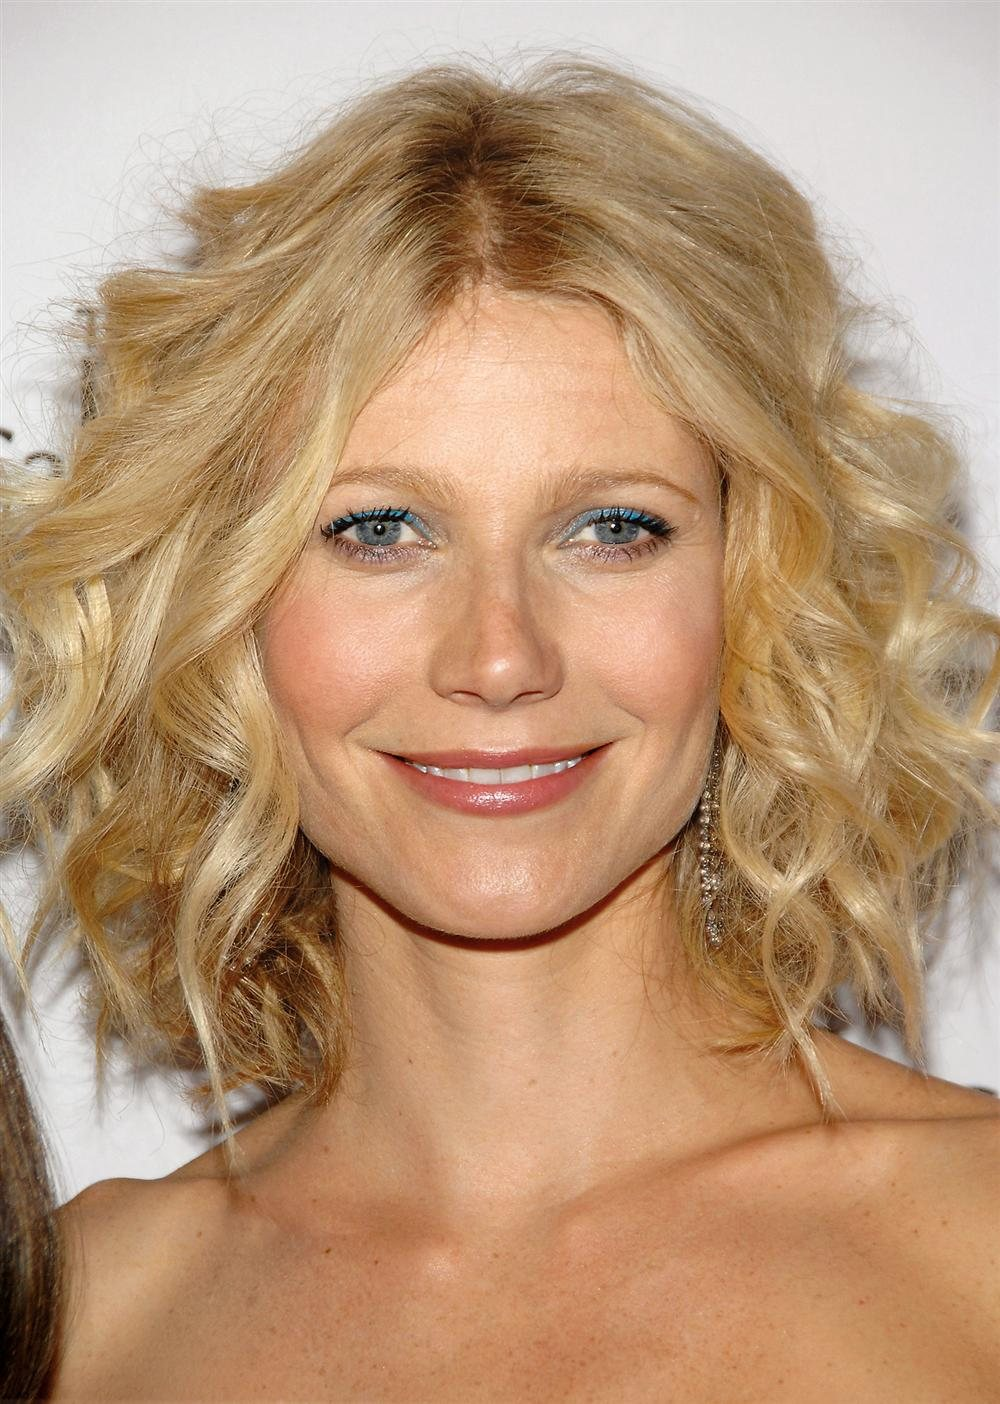 gwyneth paltrow - photo #17